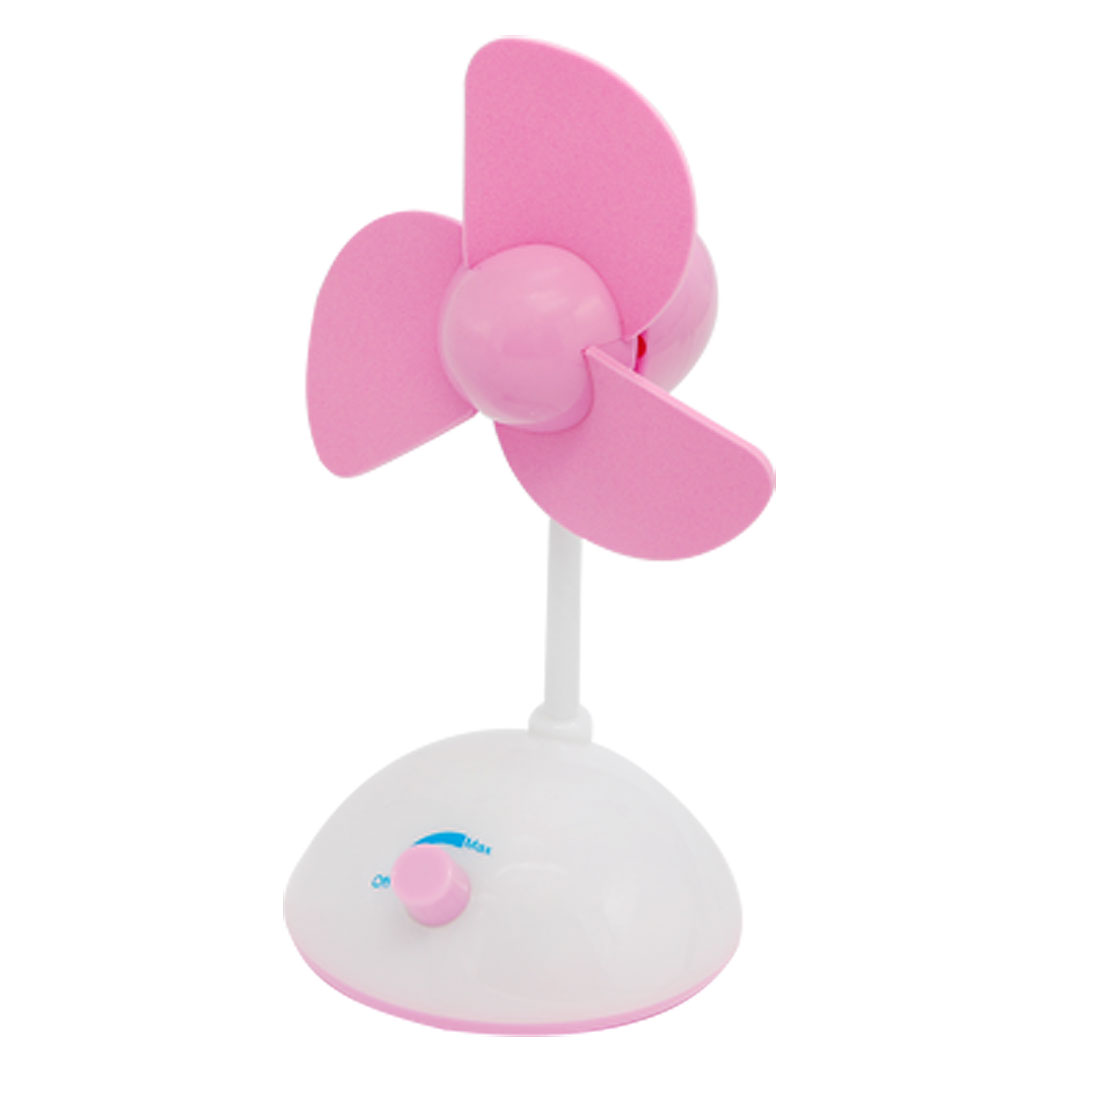 Portable Pink USB 2.0 Fan Powered by PC Laptop